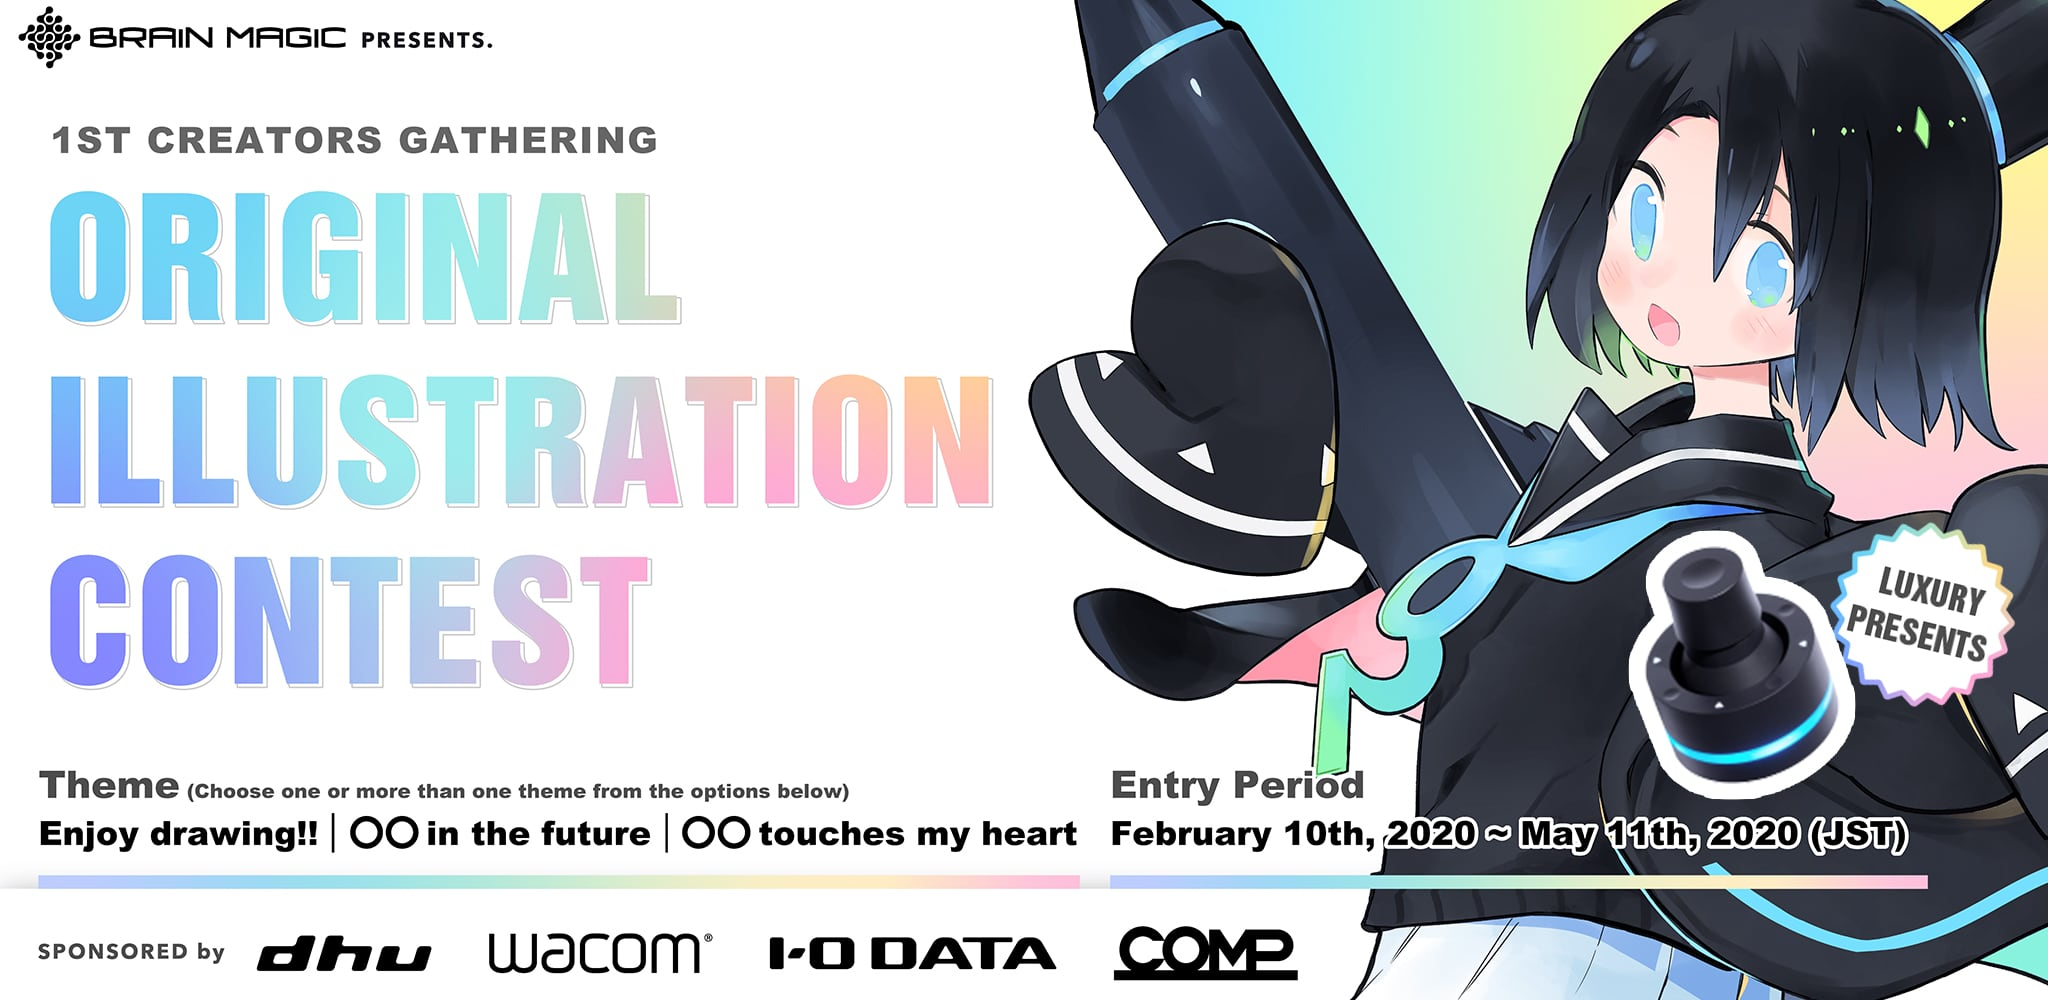 1st Creators Gathering Original Illustration Contest | Contest - ART street by MediBang